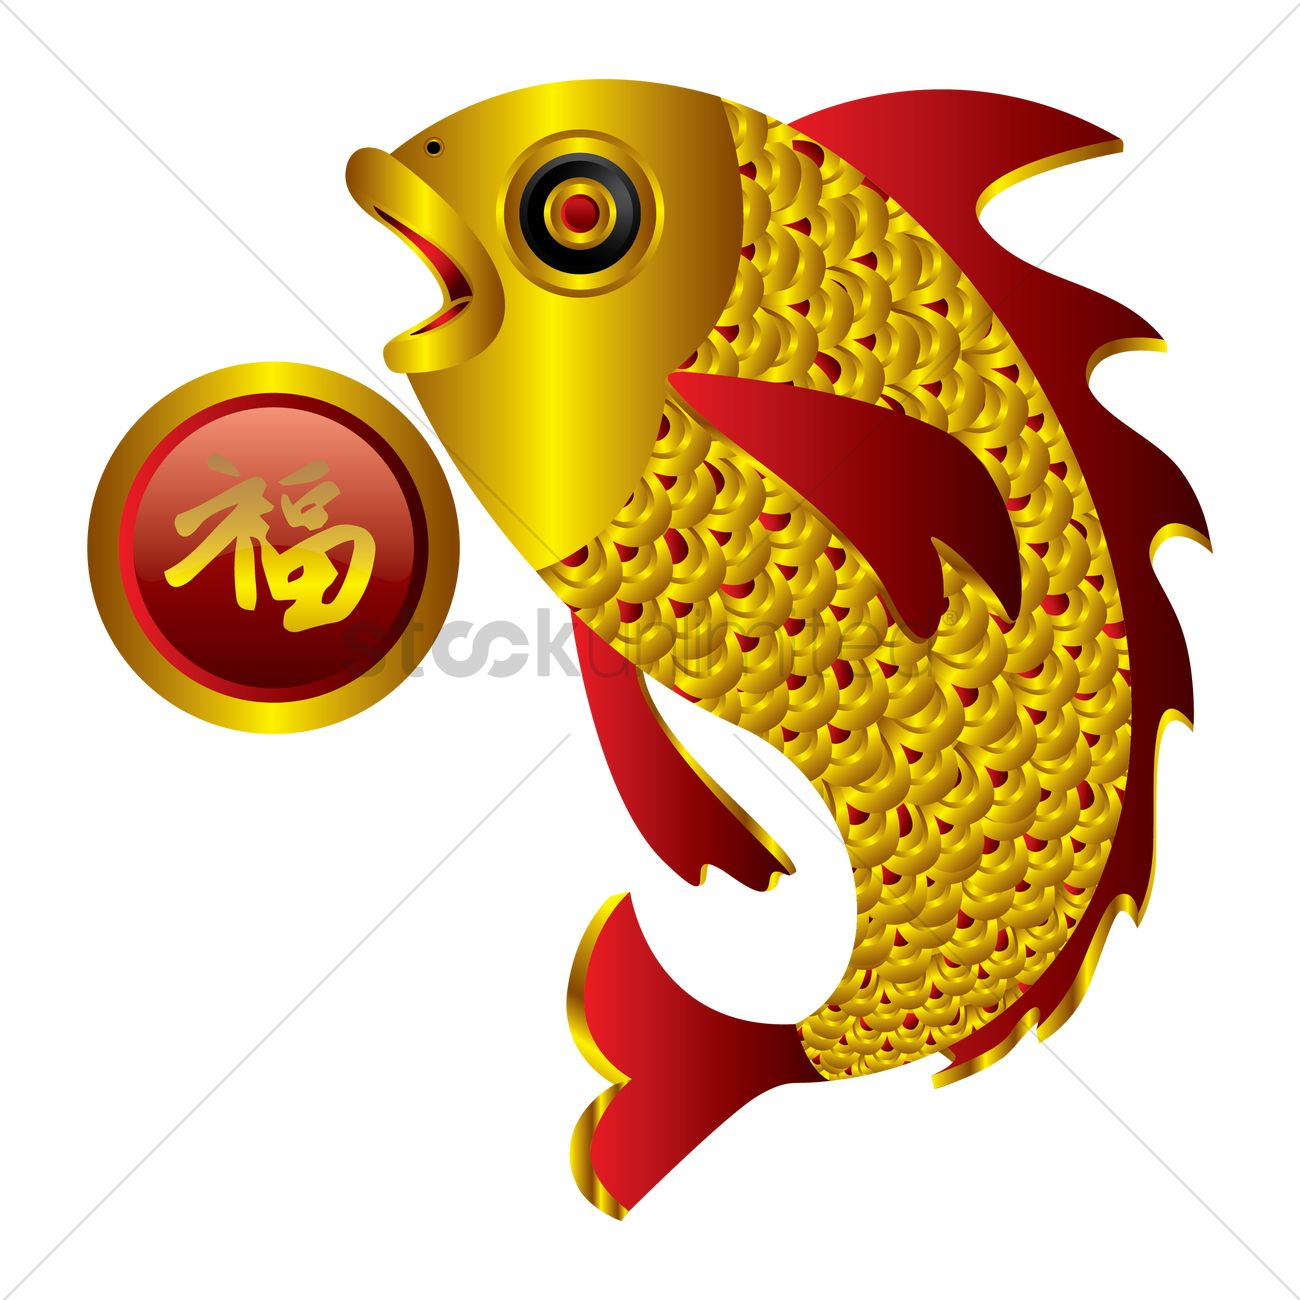 Chinese new year fish greeting card design vector image 1407710 chinese new year fish greeting card design vector graphic m4hsunfo